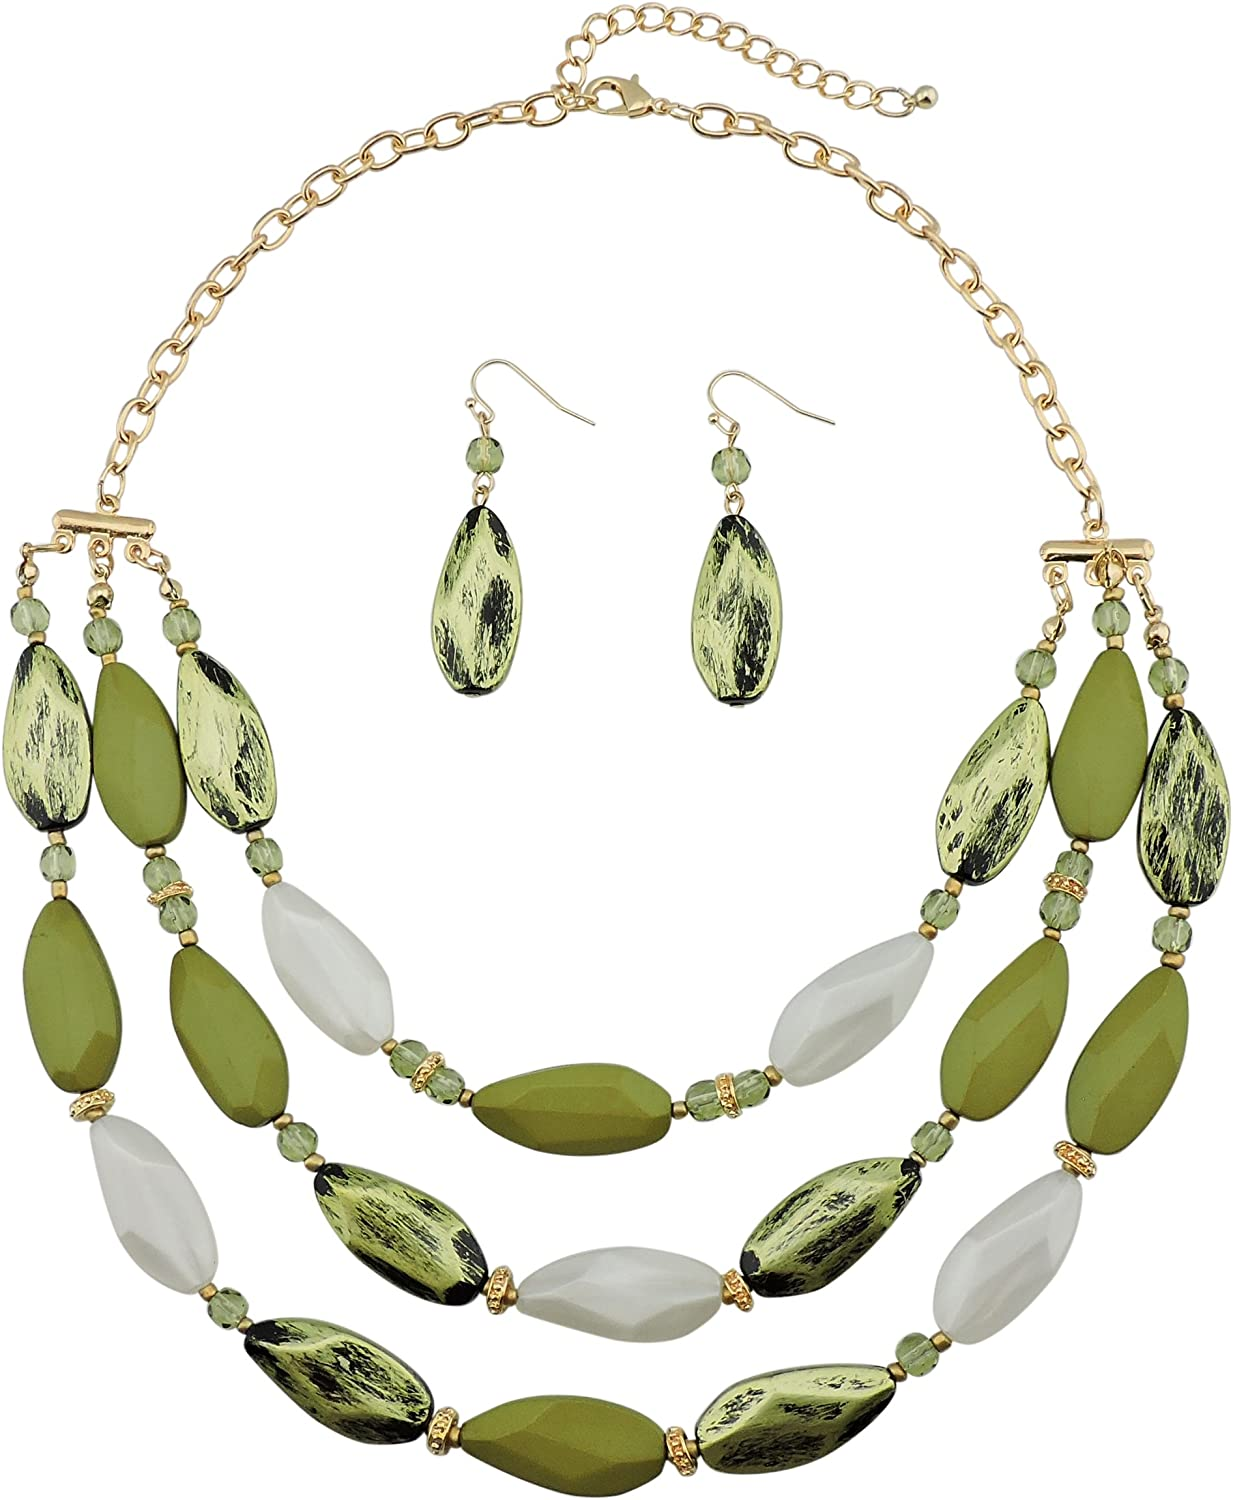 Bocar 3 Layer Beads Statement Necklace Earring for Women Jewelry Set